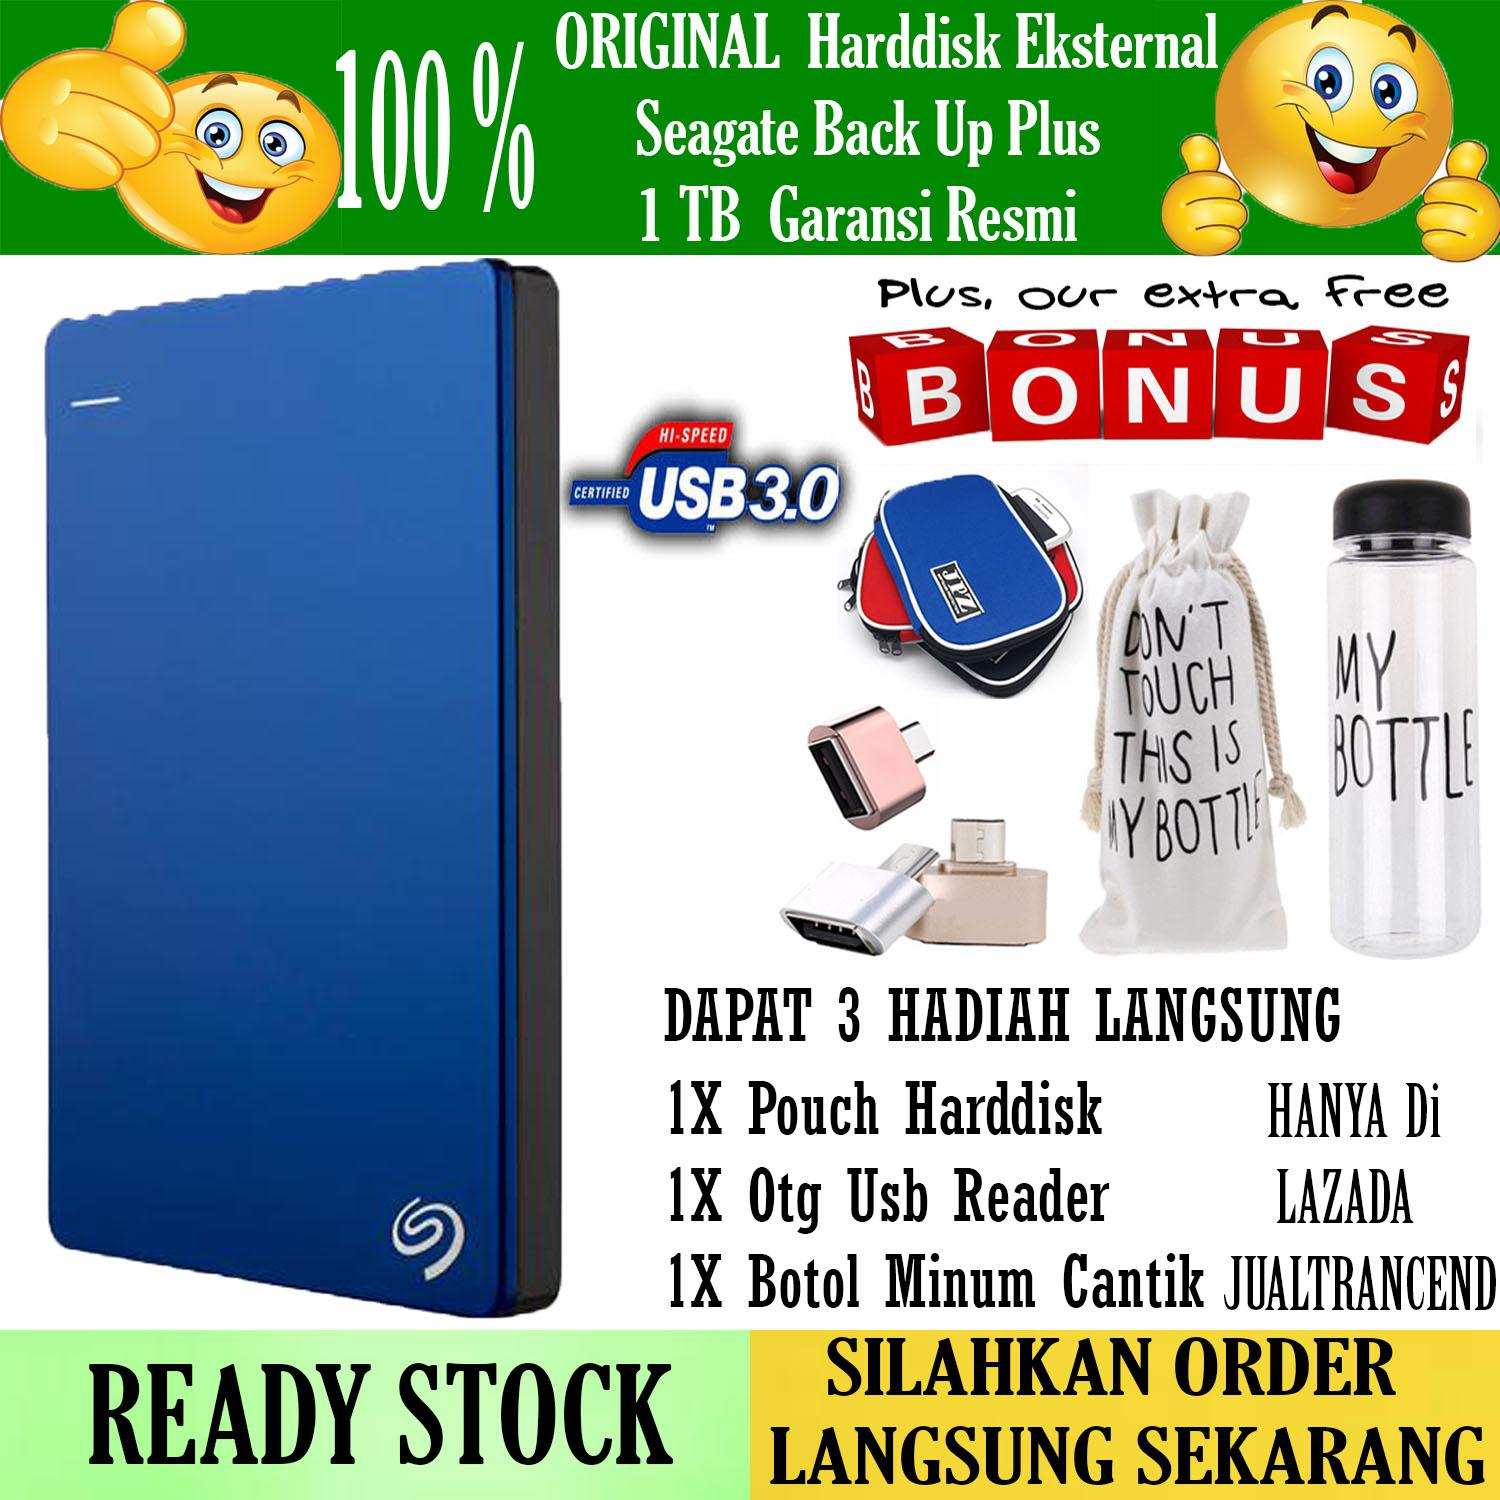 Original 100% Seagate Backup Plus Slim 1TB - HDD - HD - Hardisk External 2.5 - Gratis Usb Otg Mini Reader + Pouch Harddisk + Botol Minum My Bottle Cantik